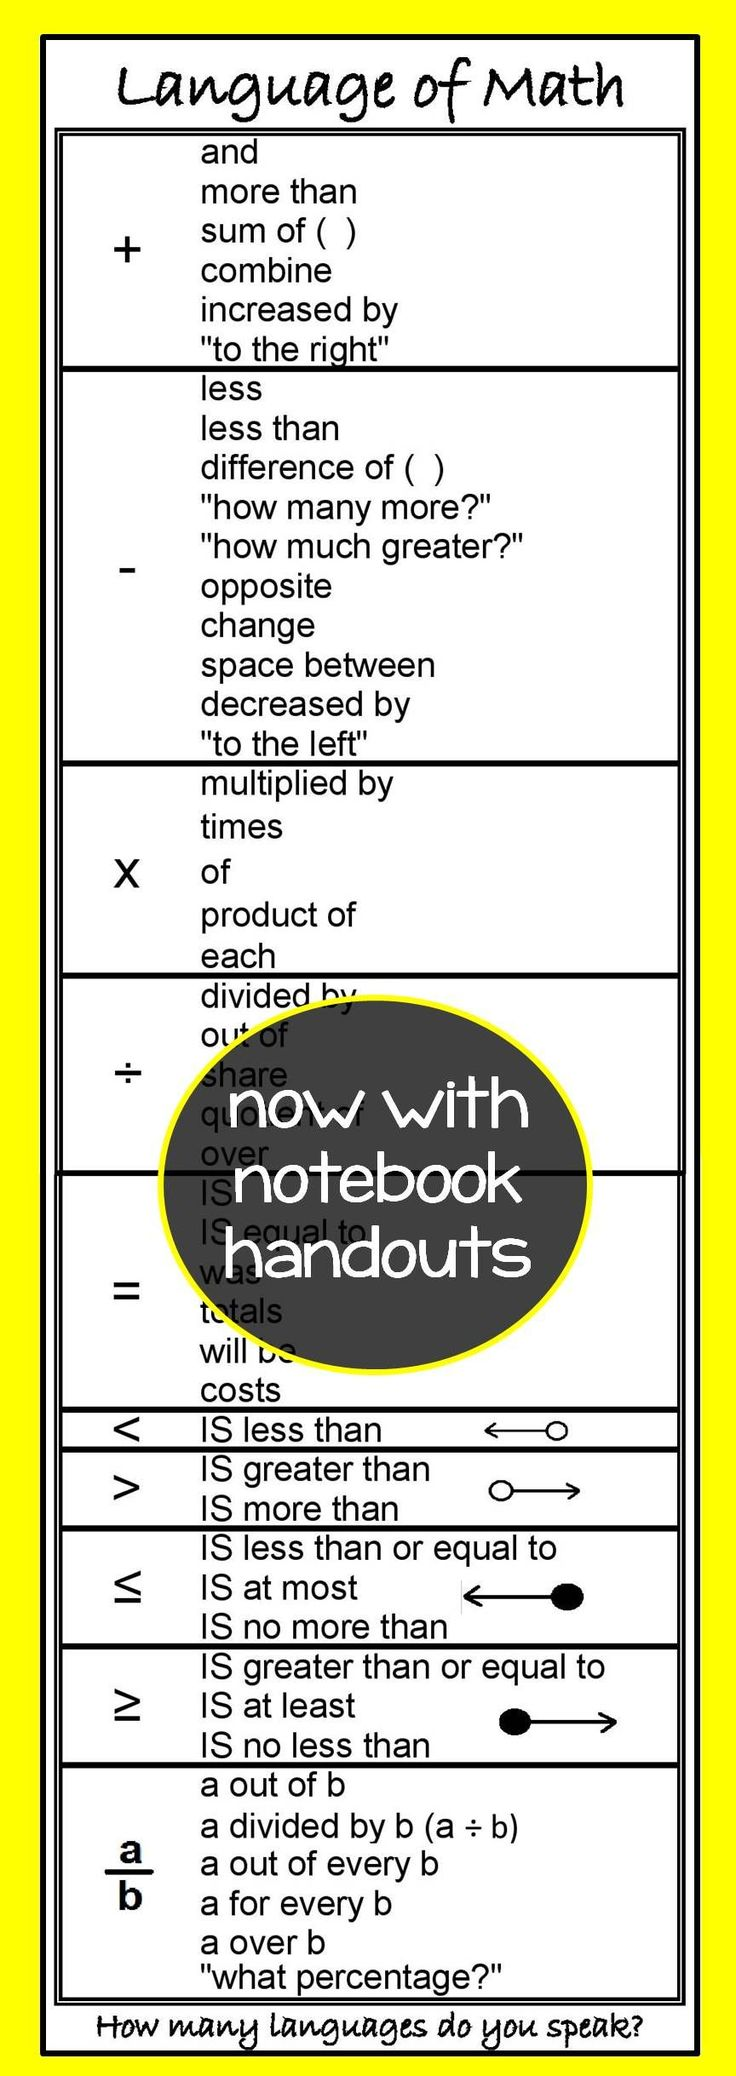 This poster (and student handouts) helps students connect the words they see in word problems to their Math symbols. Mehr zu Rechentraining auf LernCoaching-Berlin.com